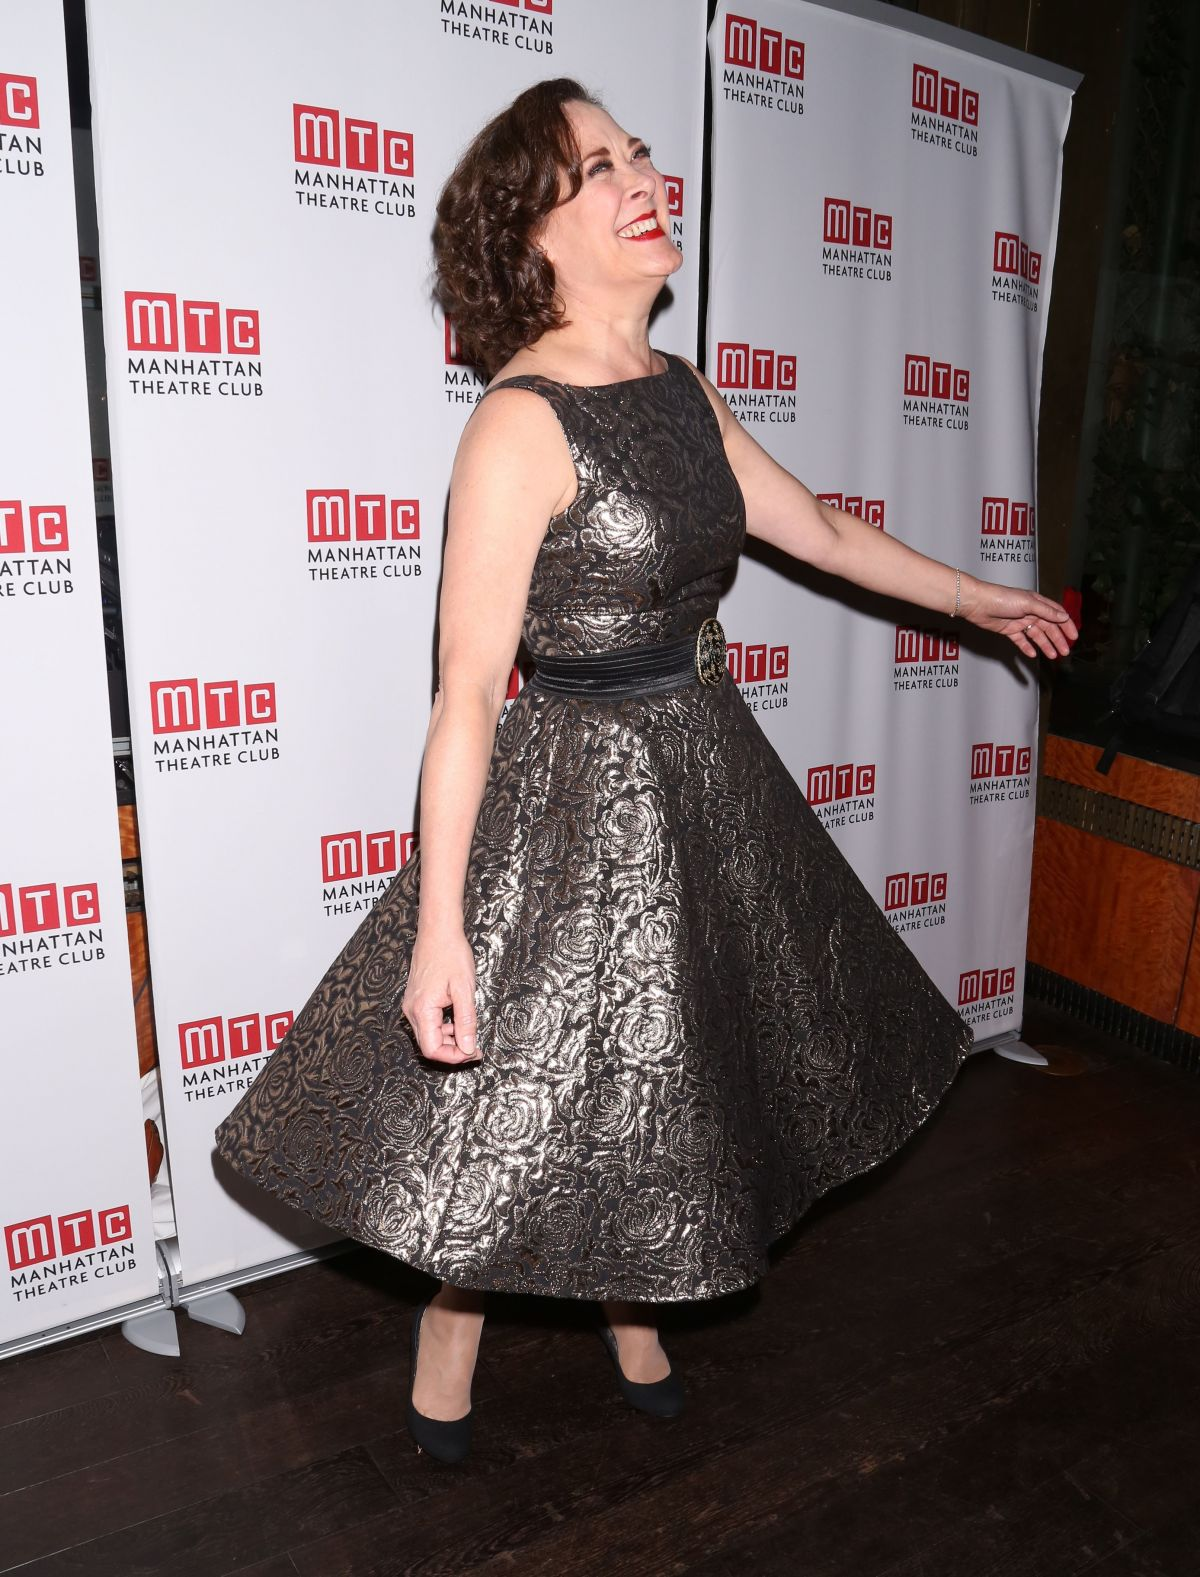 Margaret colin prince of broadway premiere in new york nude (18 pics)